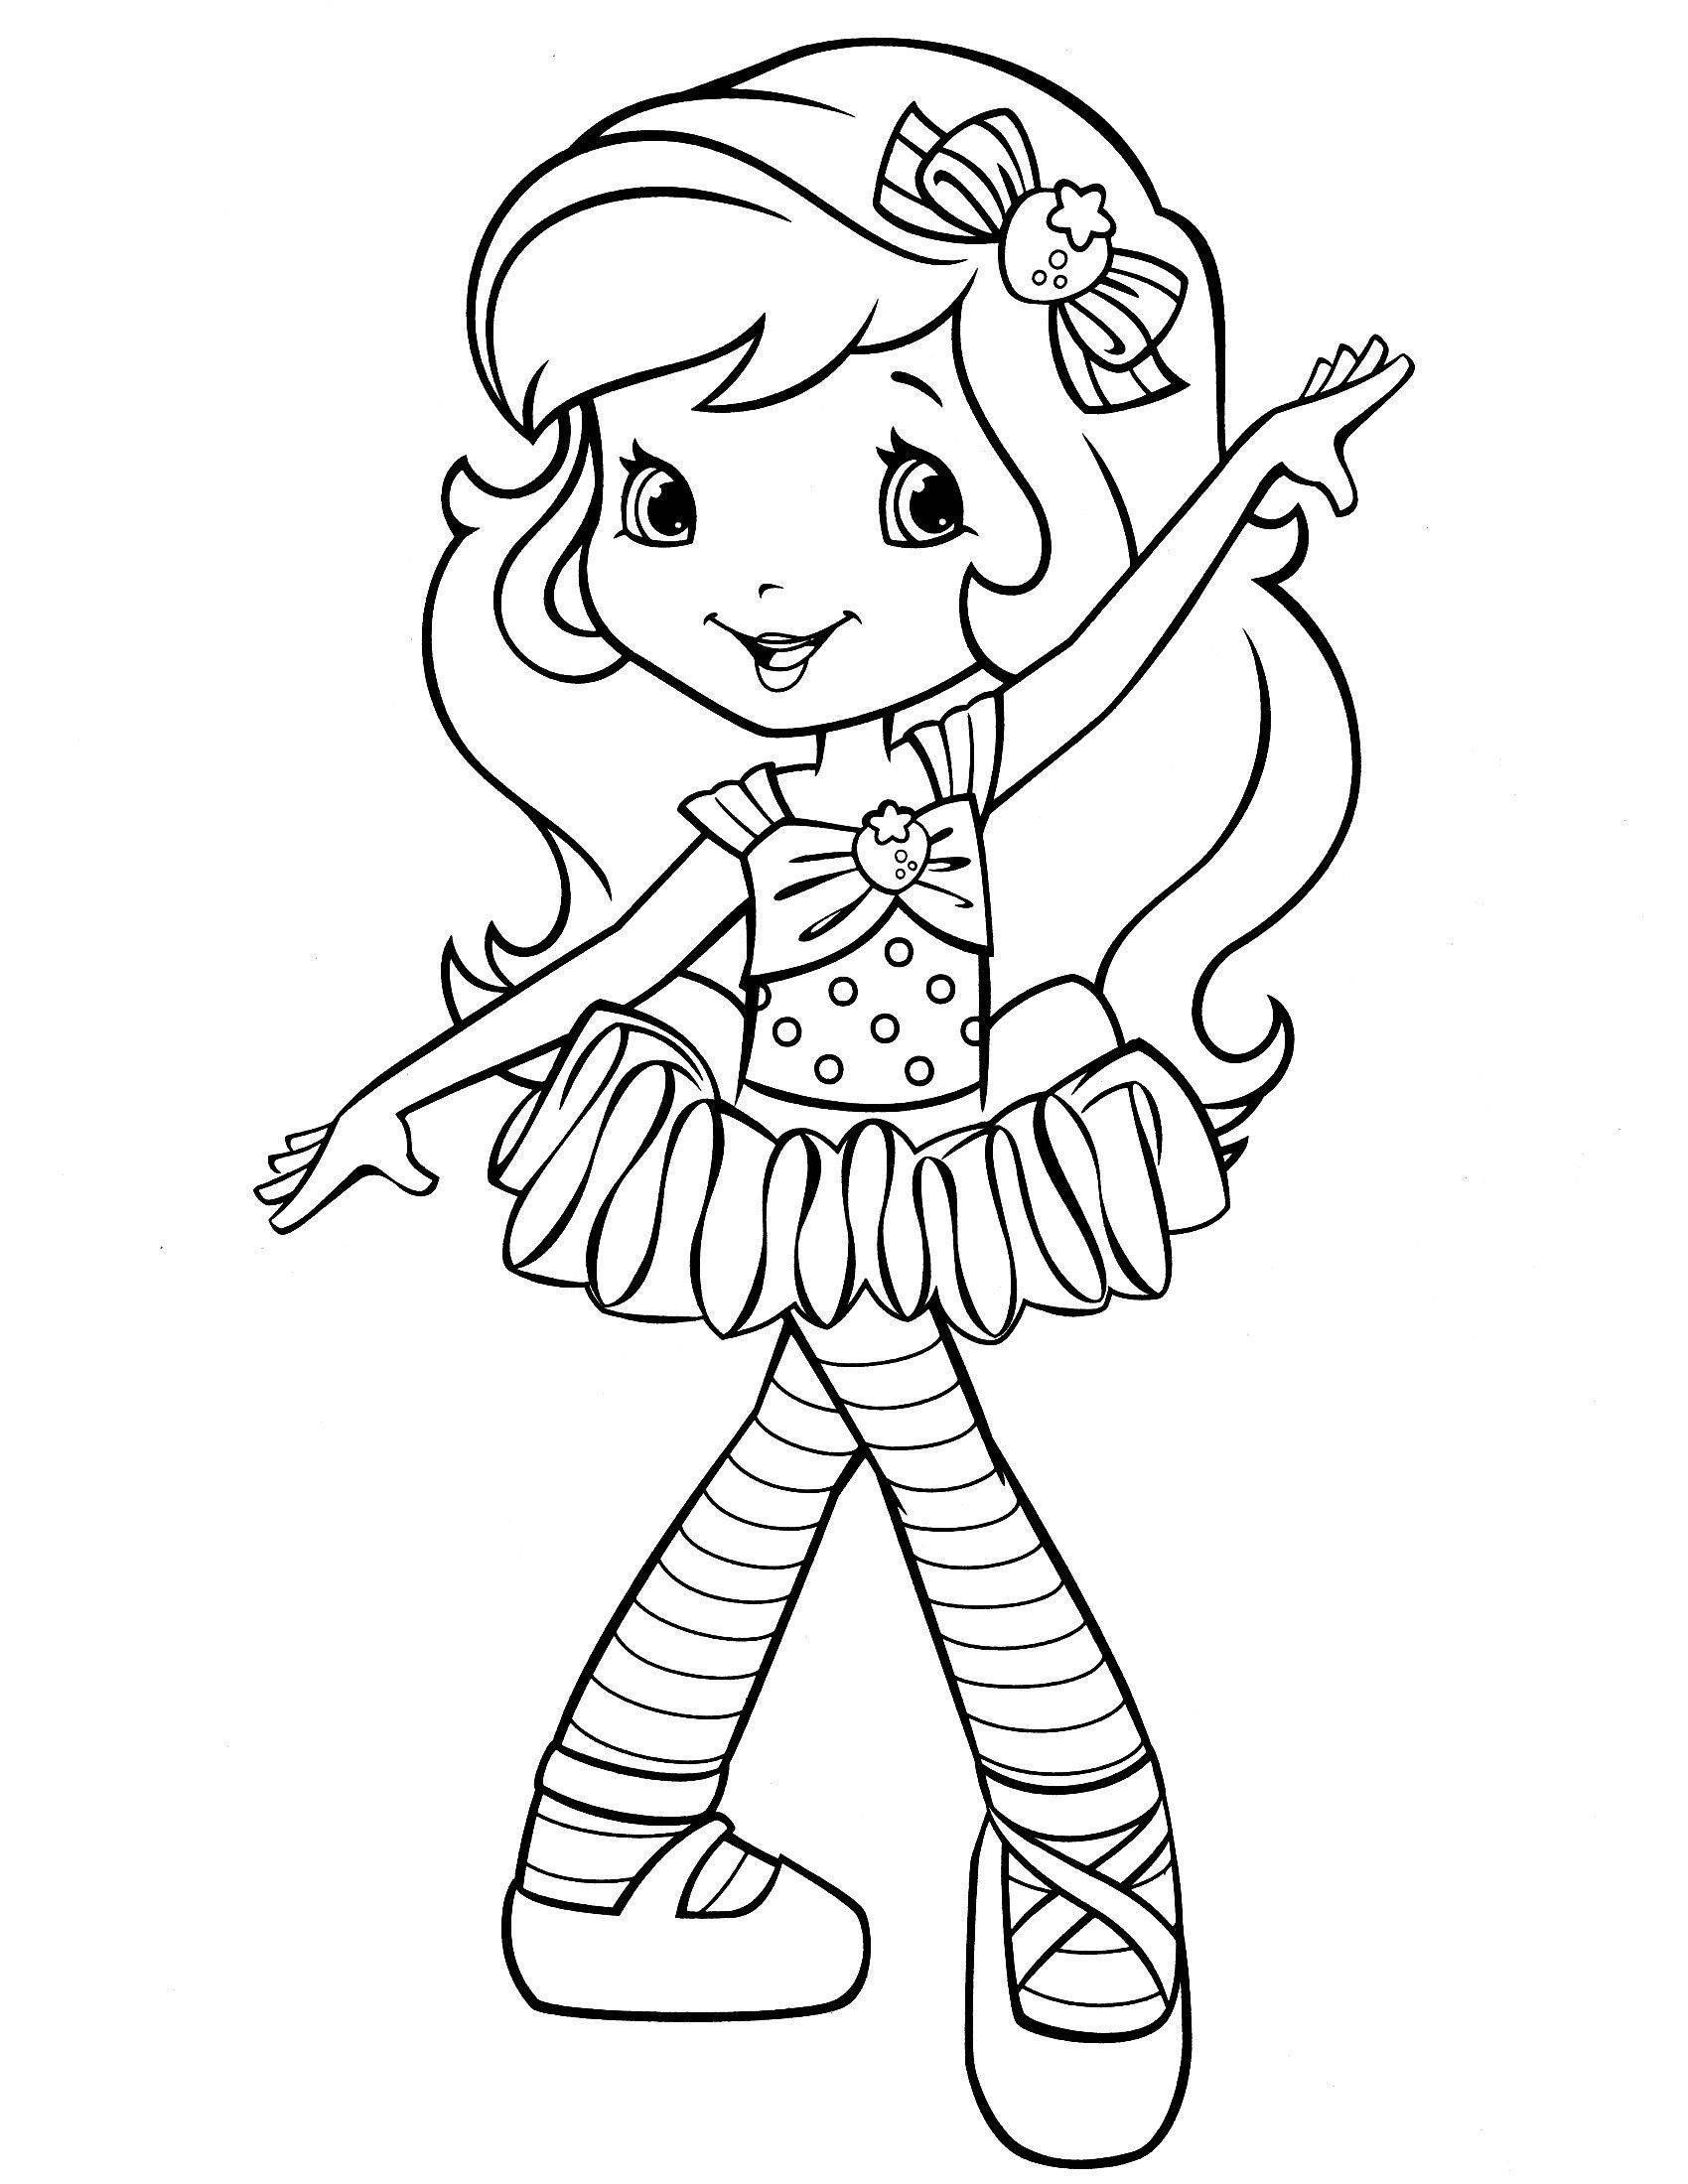 26 Awesome Strawberry Shortcake Coloring Page In